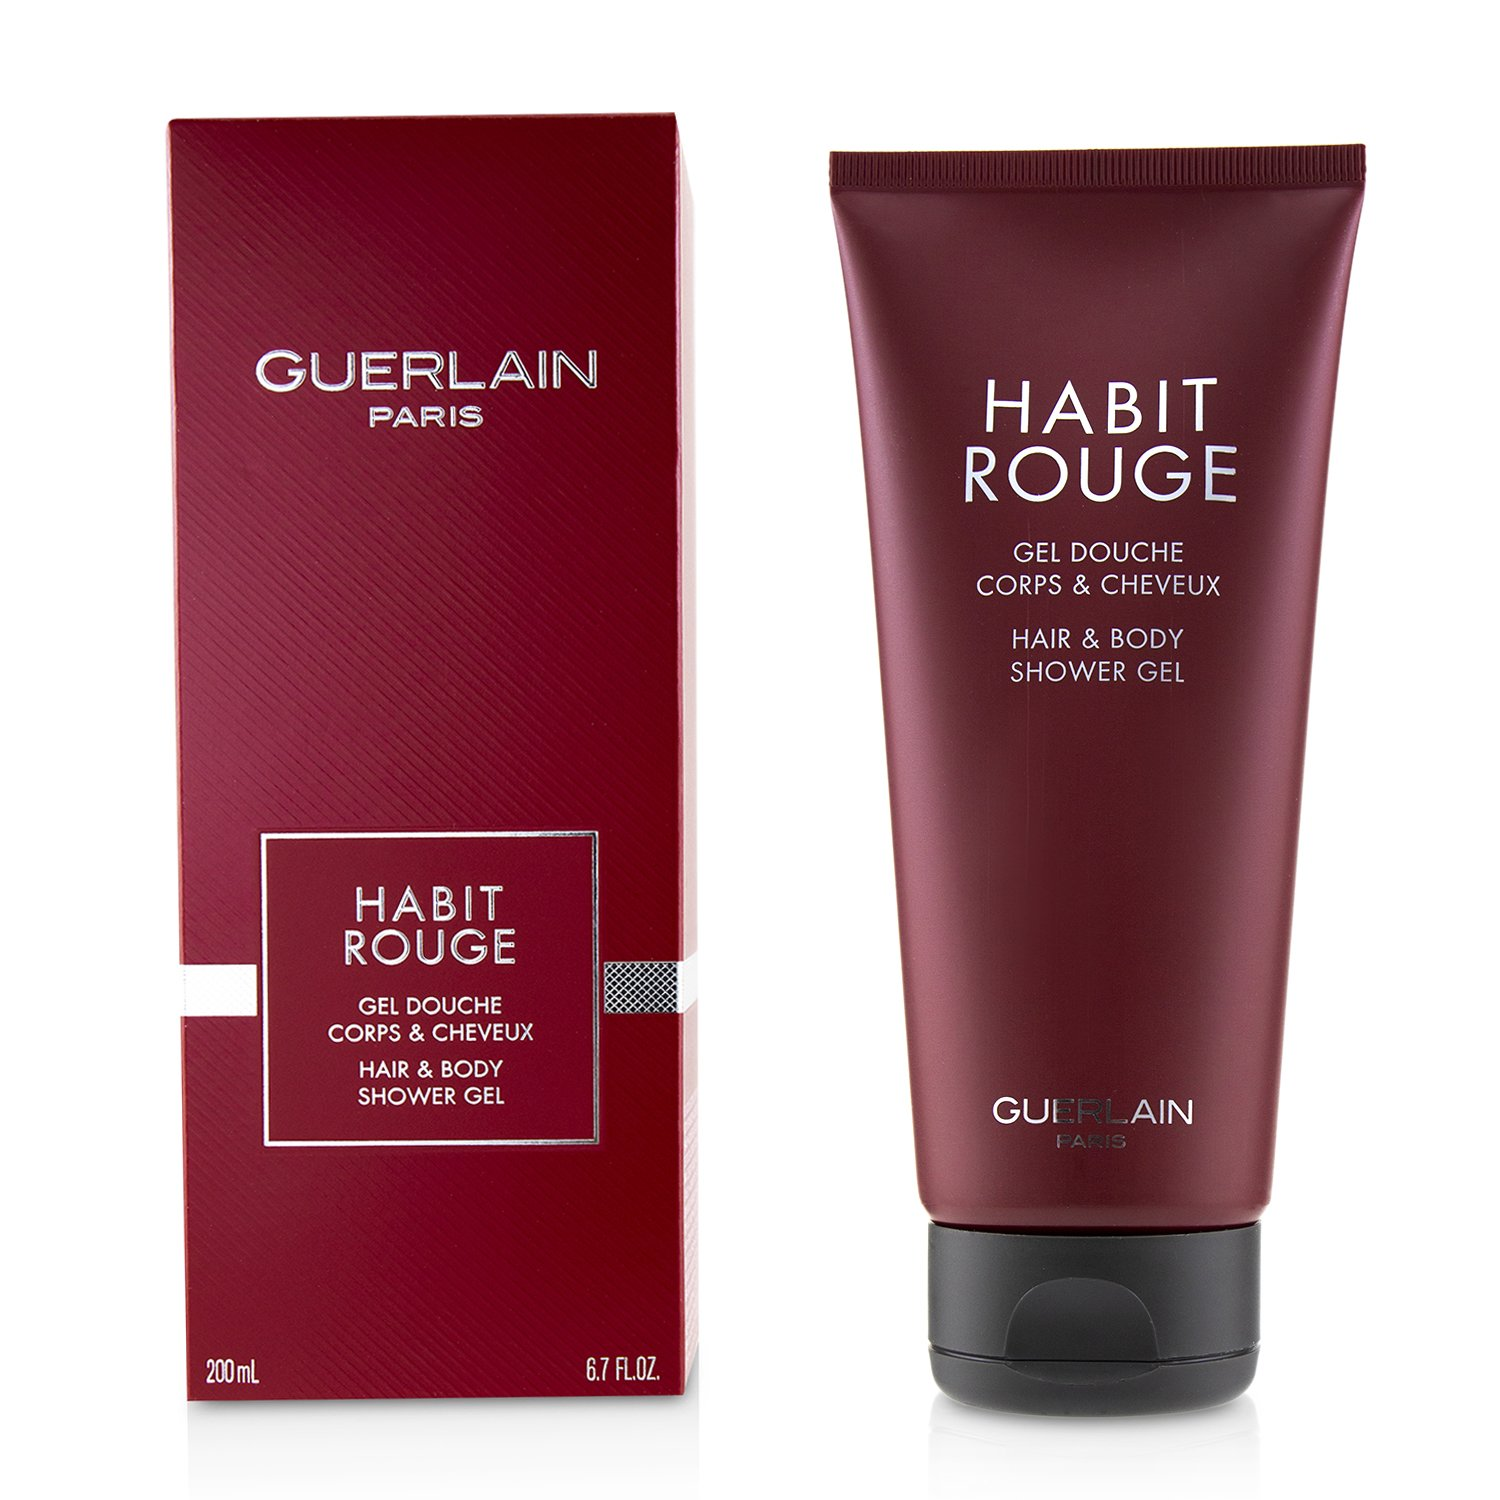 嬌蘭 Guerlain - Habit Rouge 滿堂紅洗髮沐浴露 Habit Rouge All-Over Shampoo